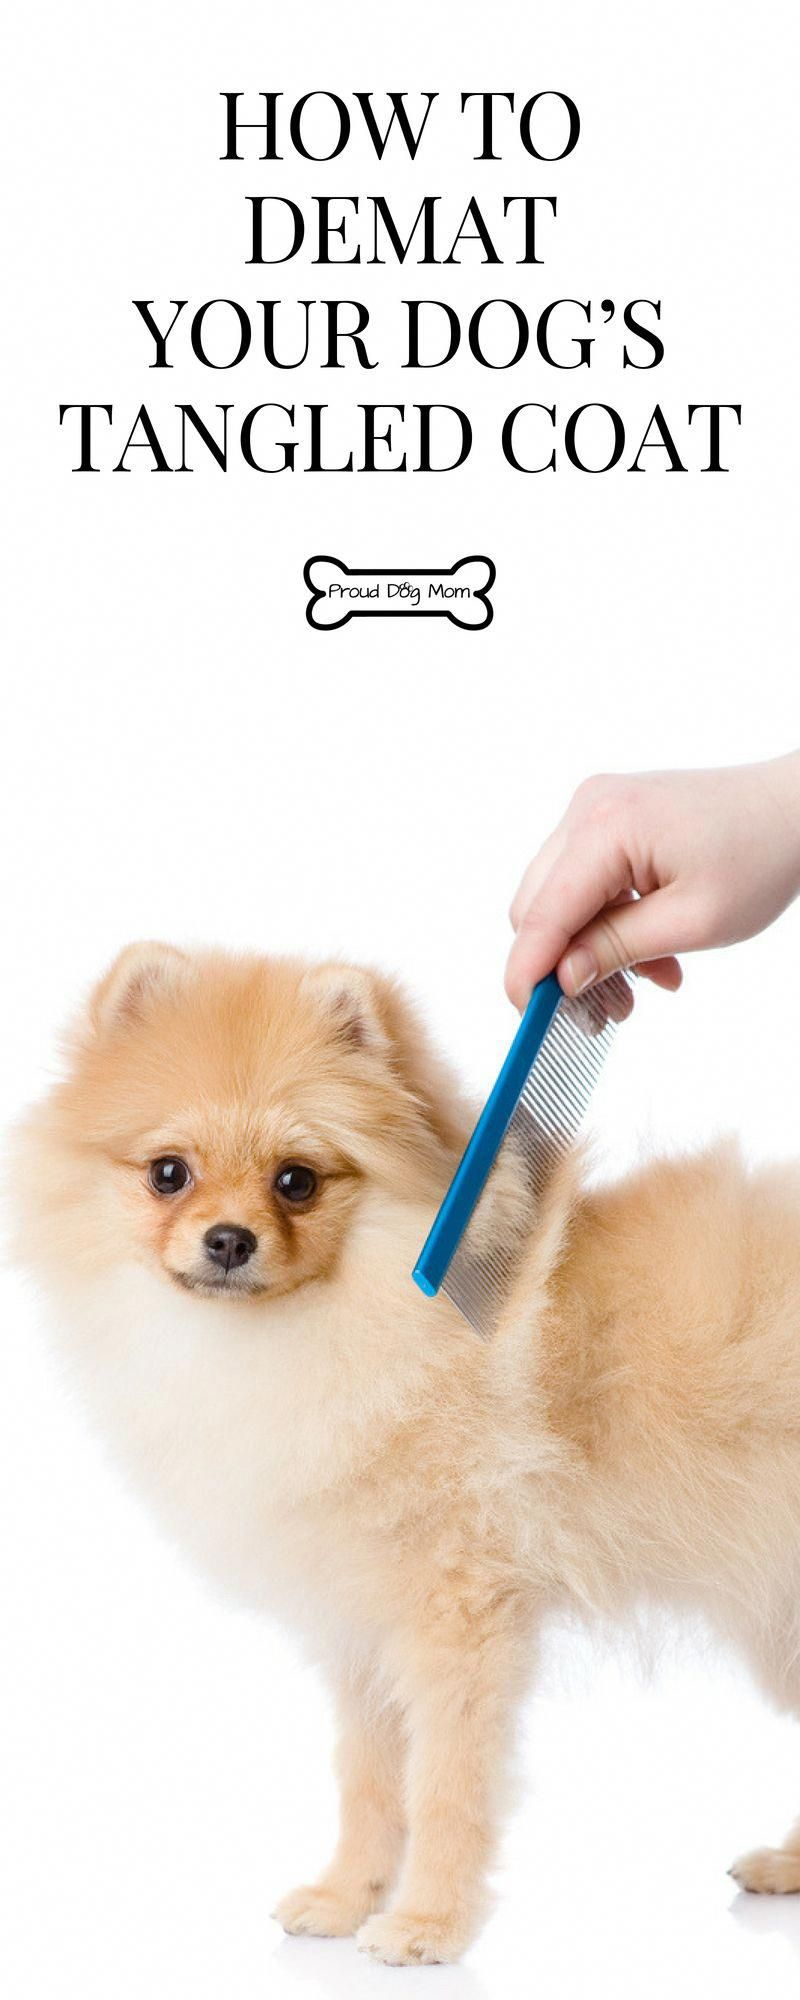 Home Grooming Tips How To Demat Your Dog's Tangled Coat